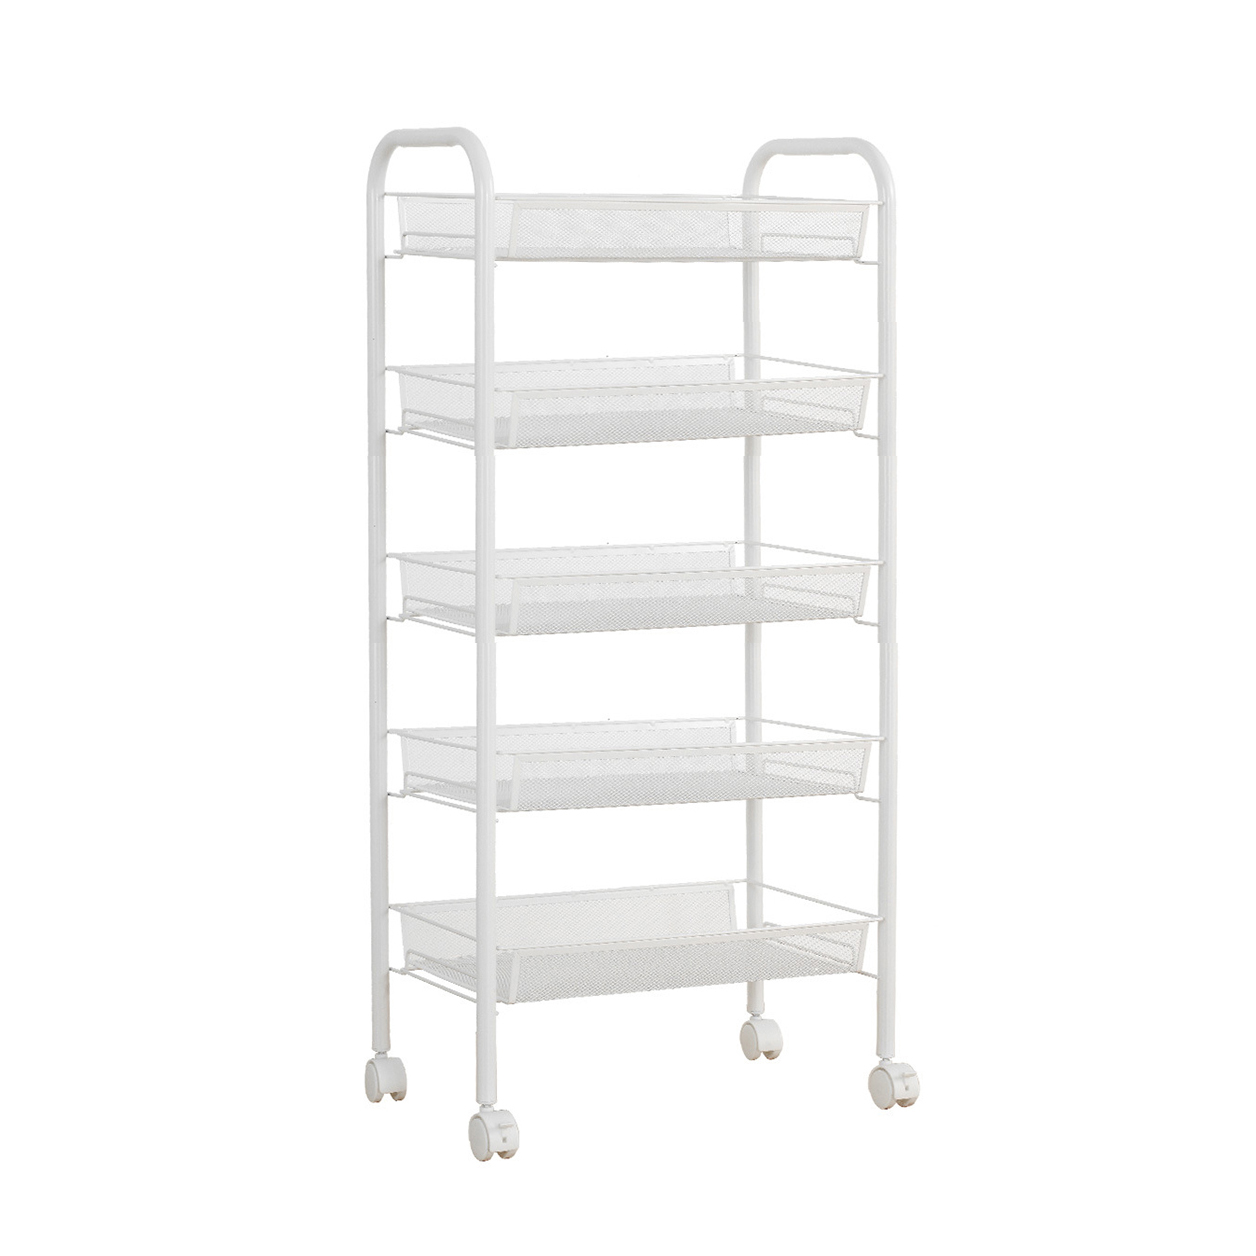 Buy Shelf Rolling And Get Free Shipping On AliExpress